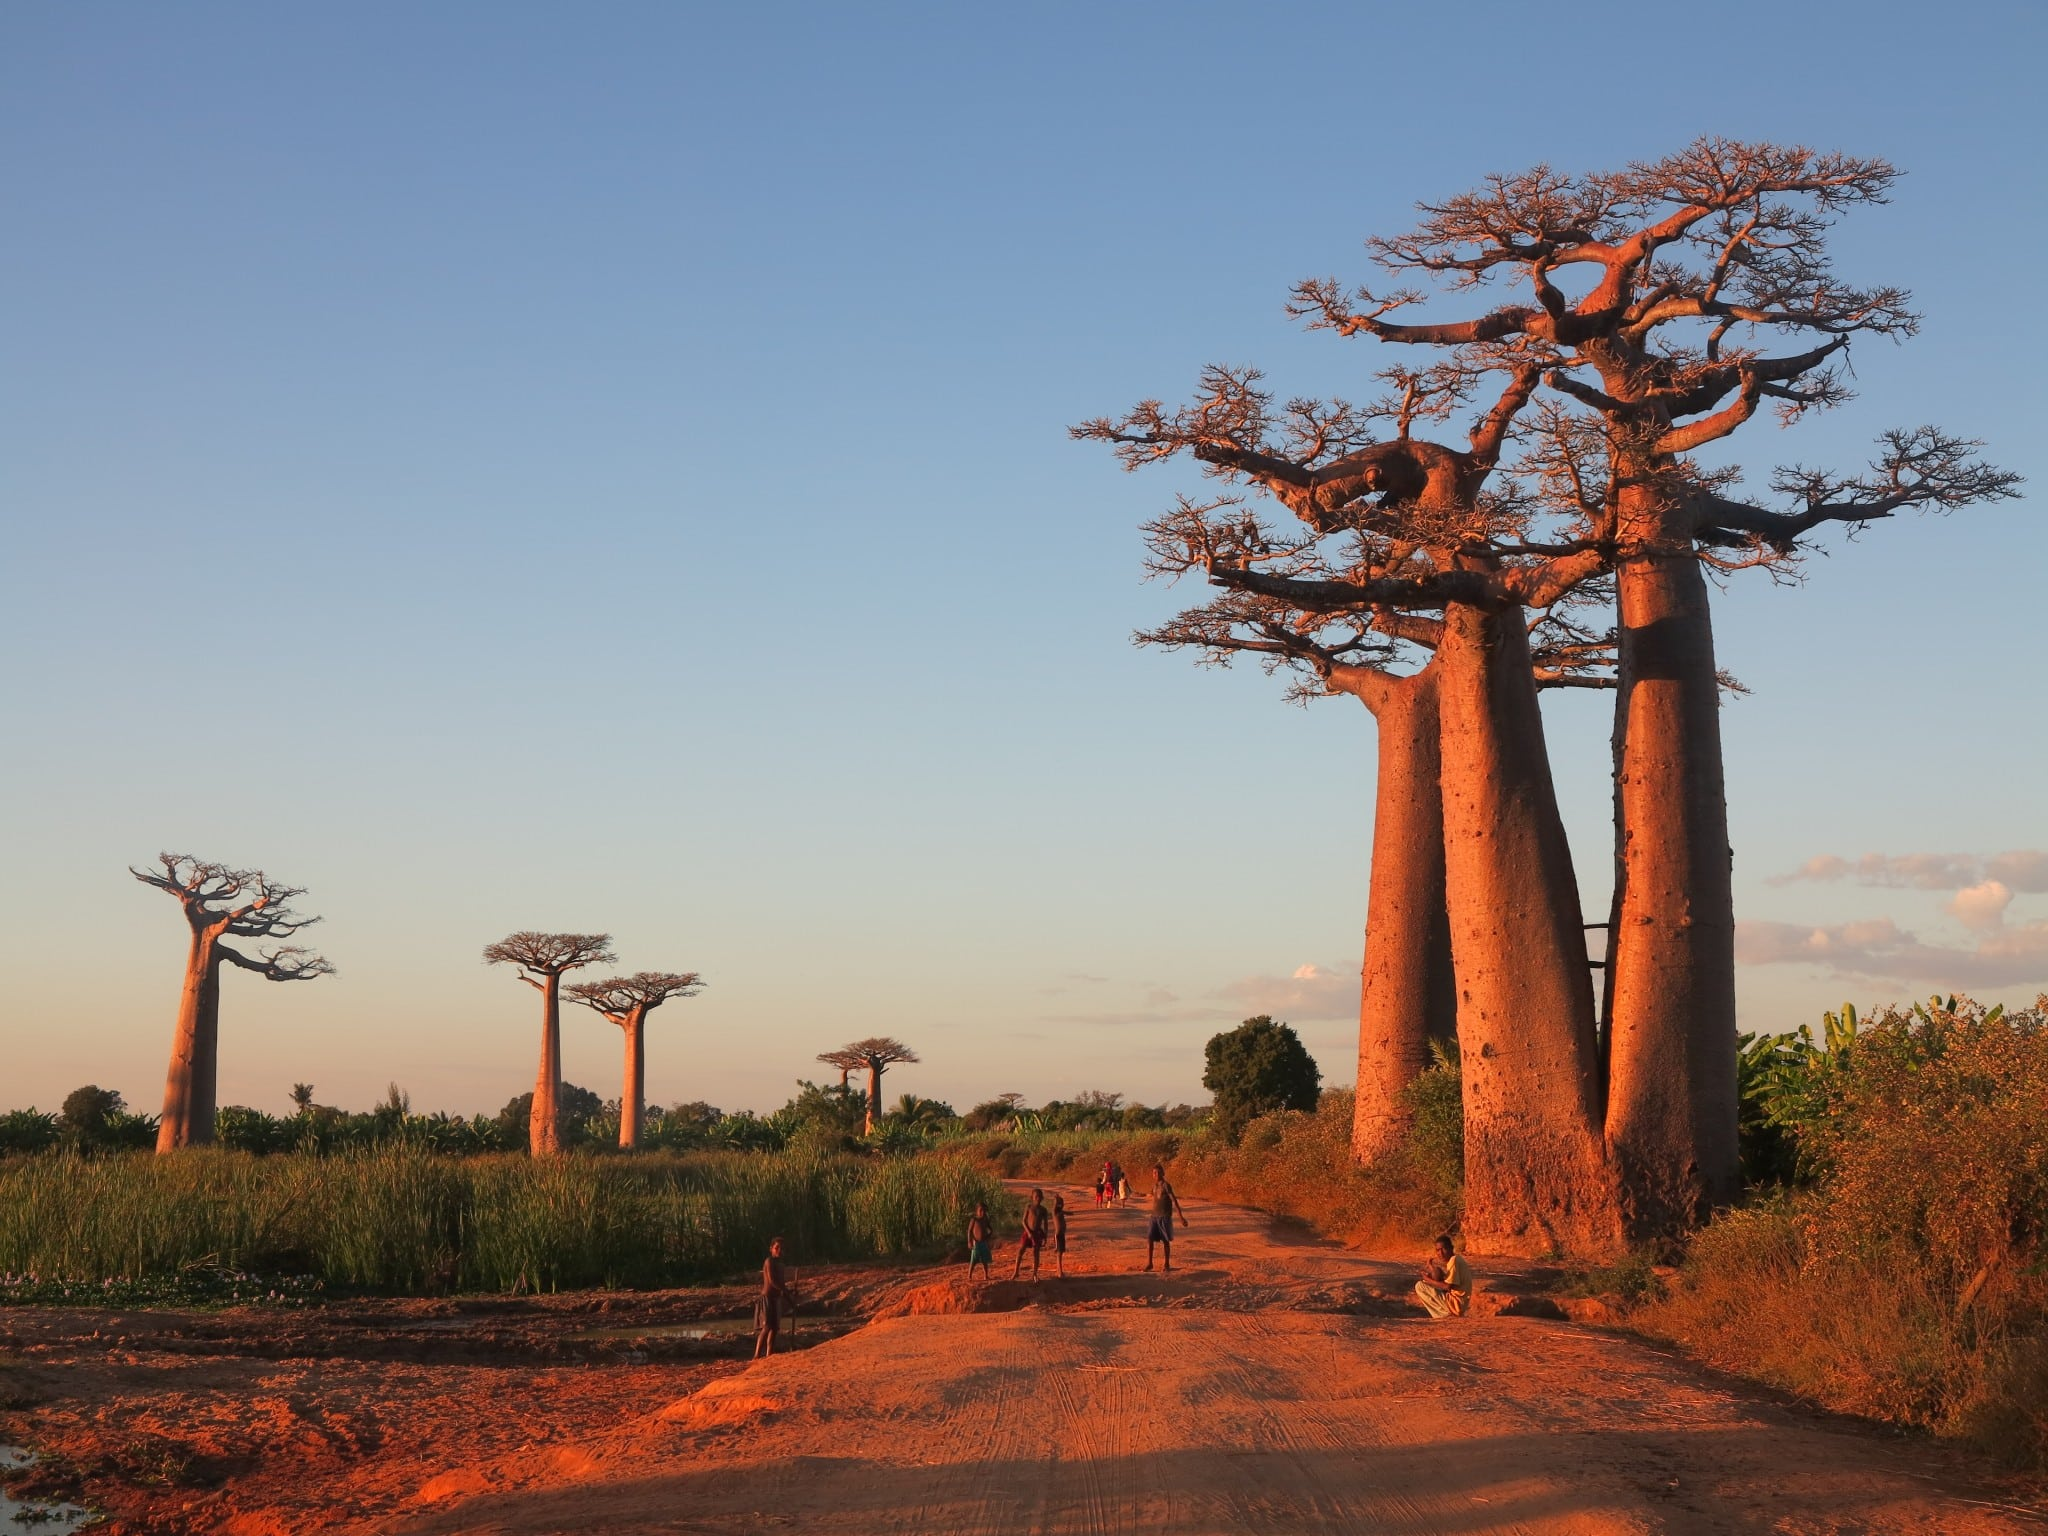 Madagascar – A Lost World